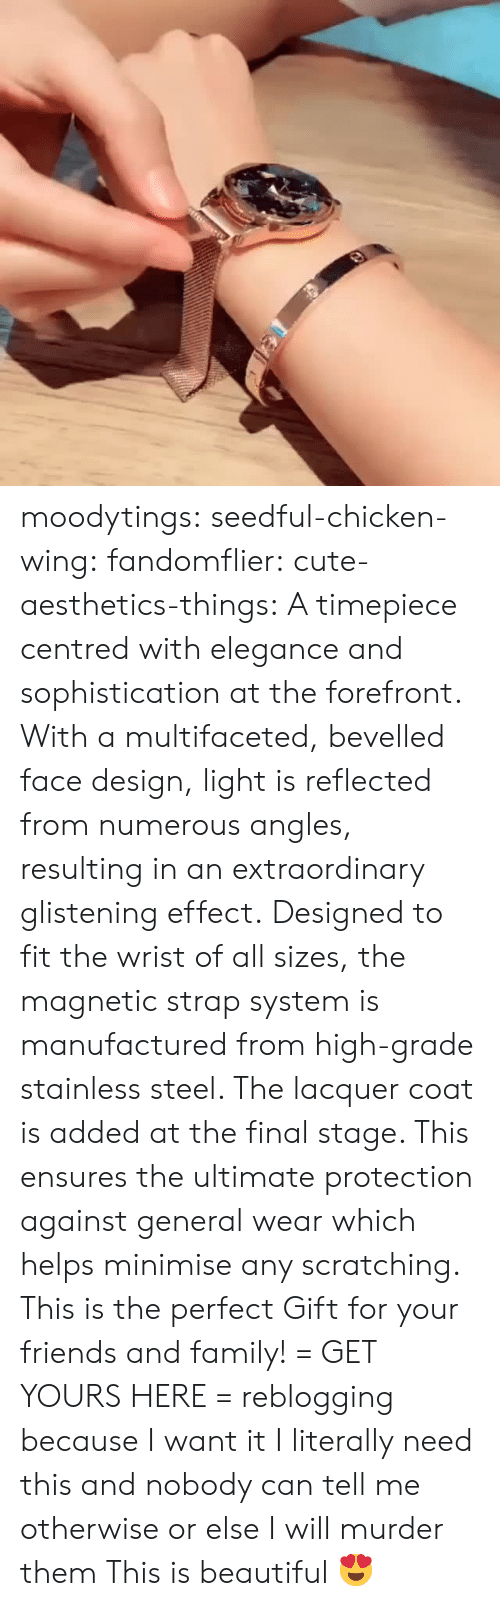 Beautiful, Cute, and Family: moodytings:  seedful-chicken-wing: fandomflier:  cute-aesthetics-things:   A timepiece centred with elegance and sophistication at the forefront. With a multifaceted, bevelled face design, light is reflected from numerous angles, resulting in an extraordinary glistening effect. Designed to fit the wrist of all sizes, the magnetic strap system is manufactured from high-grade stainless steel. The lacquer coat is added at the final stage. This ensures the ultimate protection against general wear which helps minimise any scratching. This is the perfect Gift for your friends and family! = GET YOURS HERE =   reblogging because I want it  I literally need this and nobody can tell me otherwise or else I will murder them   This is beautiful 😍